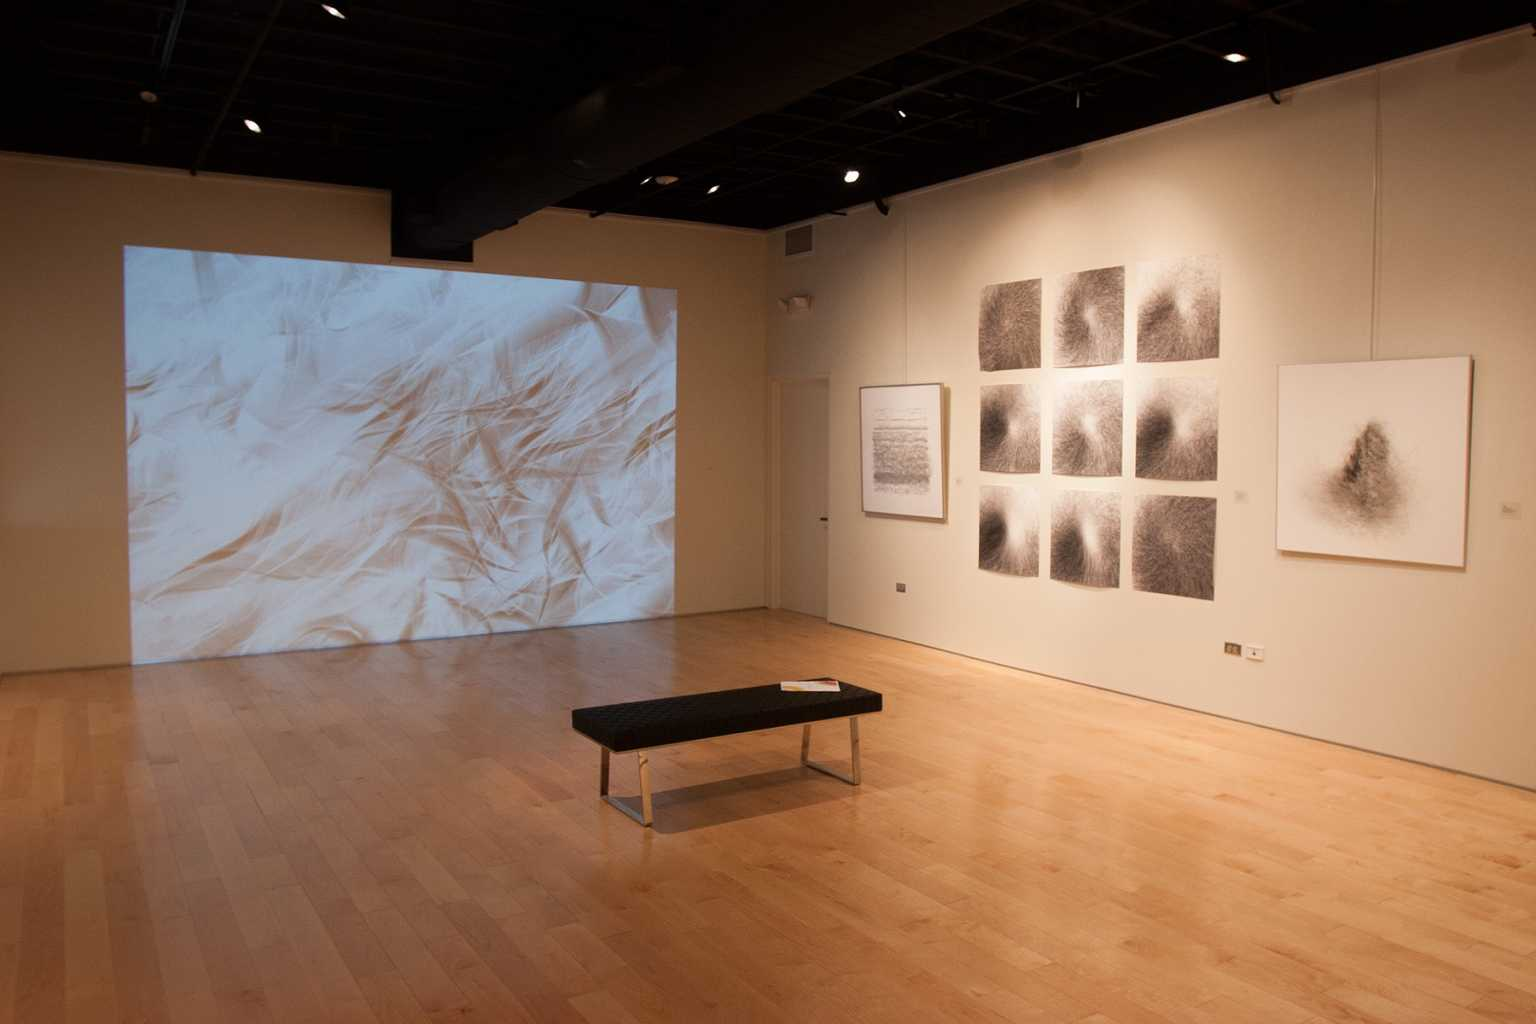 Installation view of Air Current(s) and prints of wind drawings